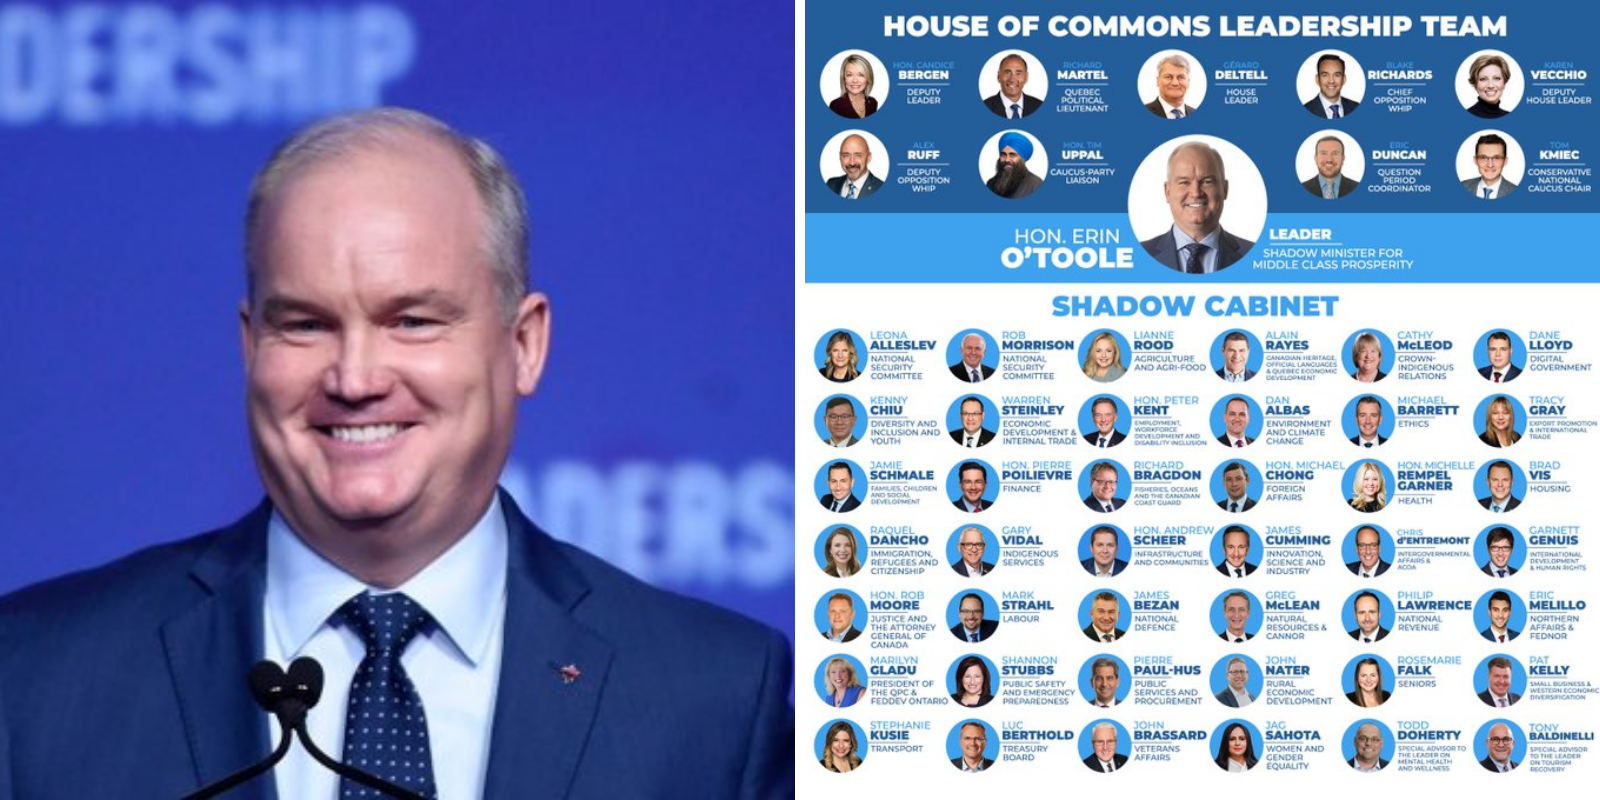 Erin O'Toole announces new Conservative Party Shadow Cabinet, includes role for Andrew Scheer